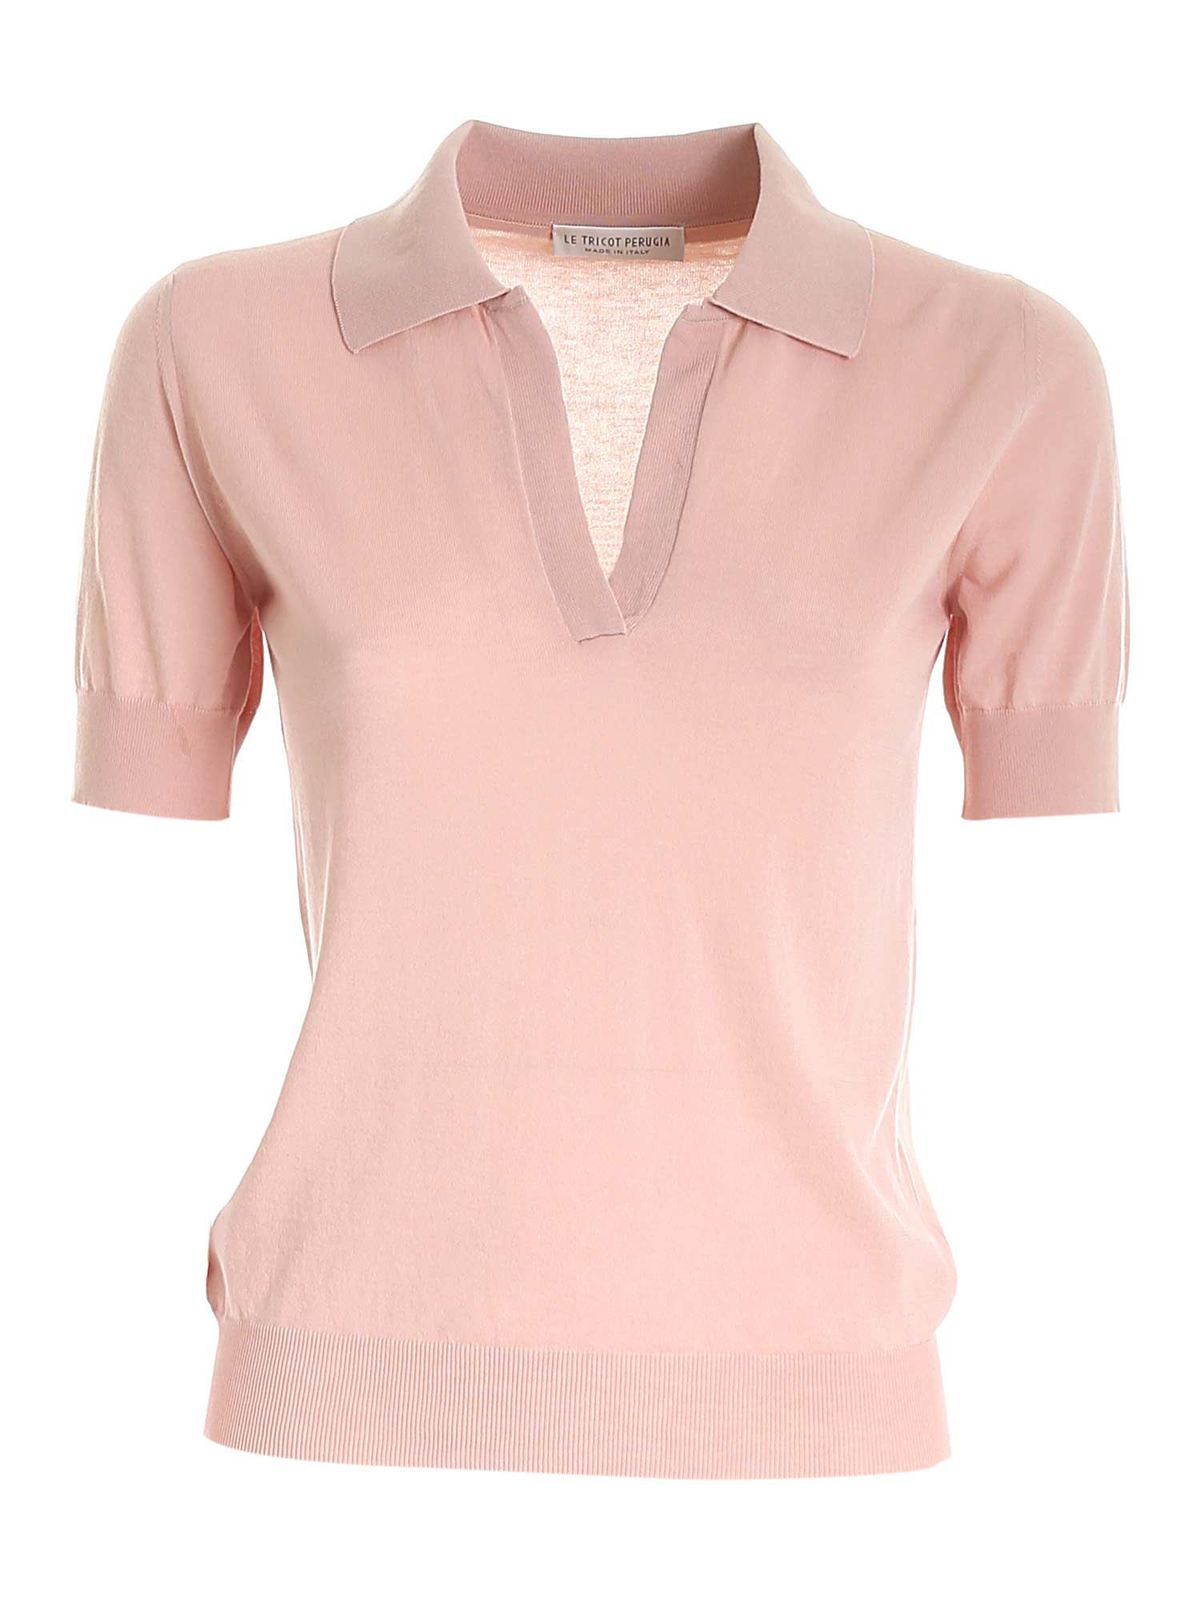 Le Tricot Perugia COTTON SWEATER IN PINK